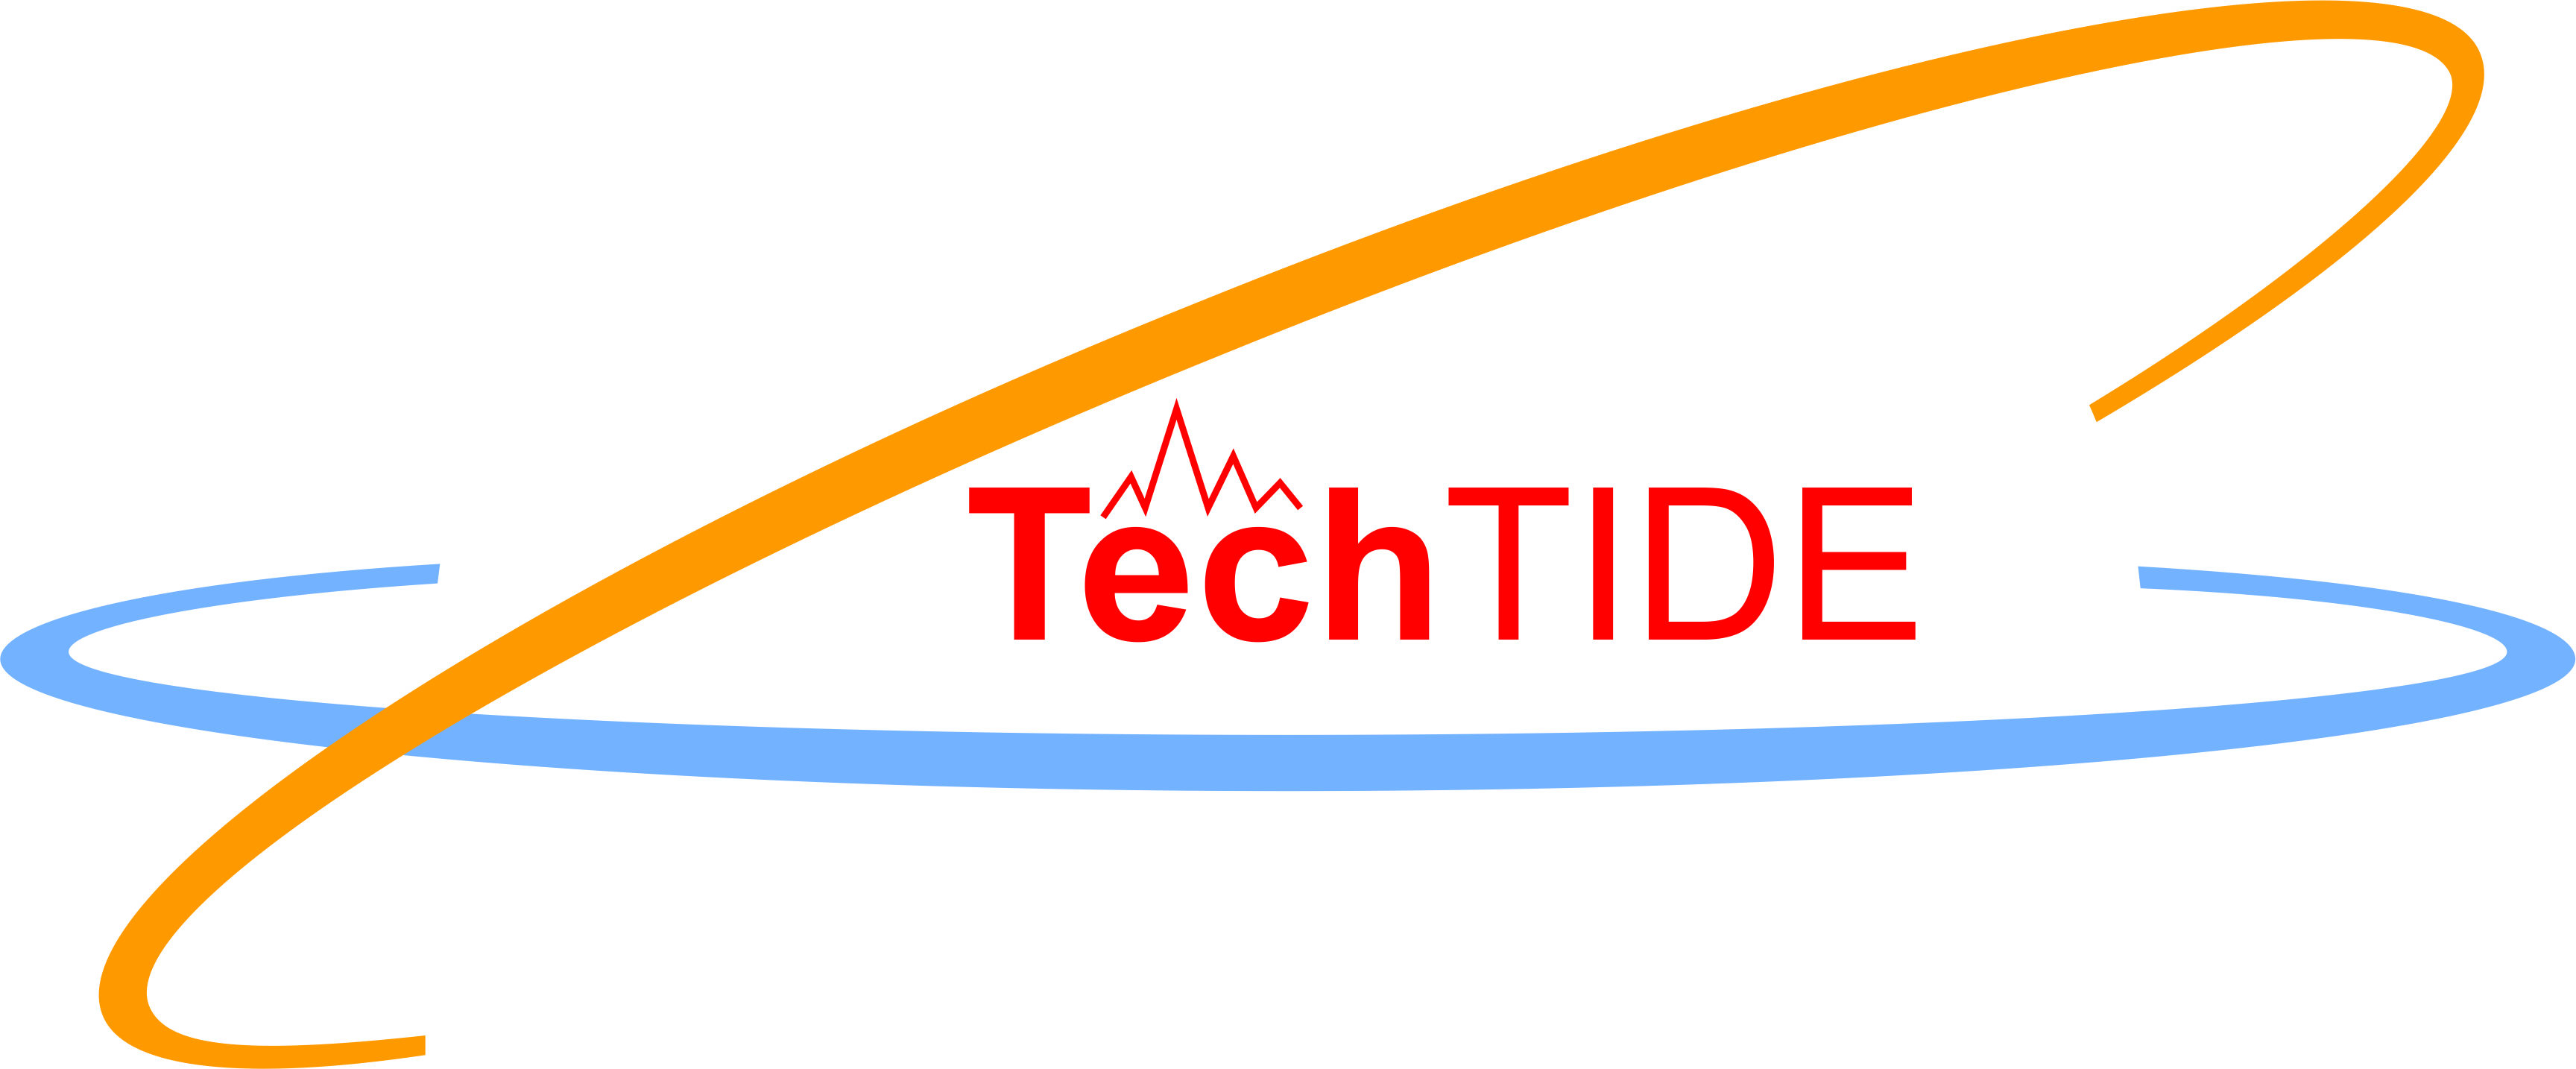 TechTIDE Project